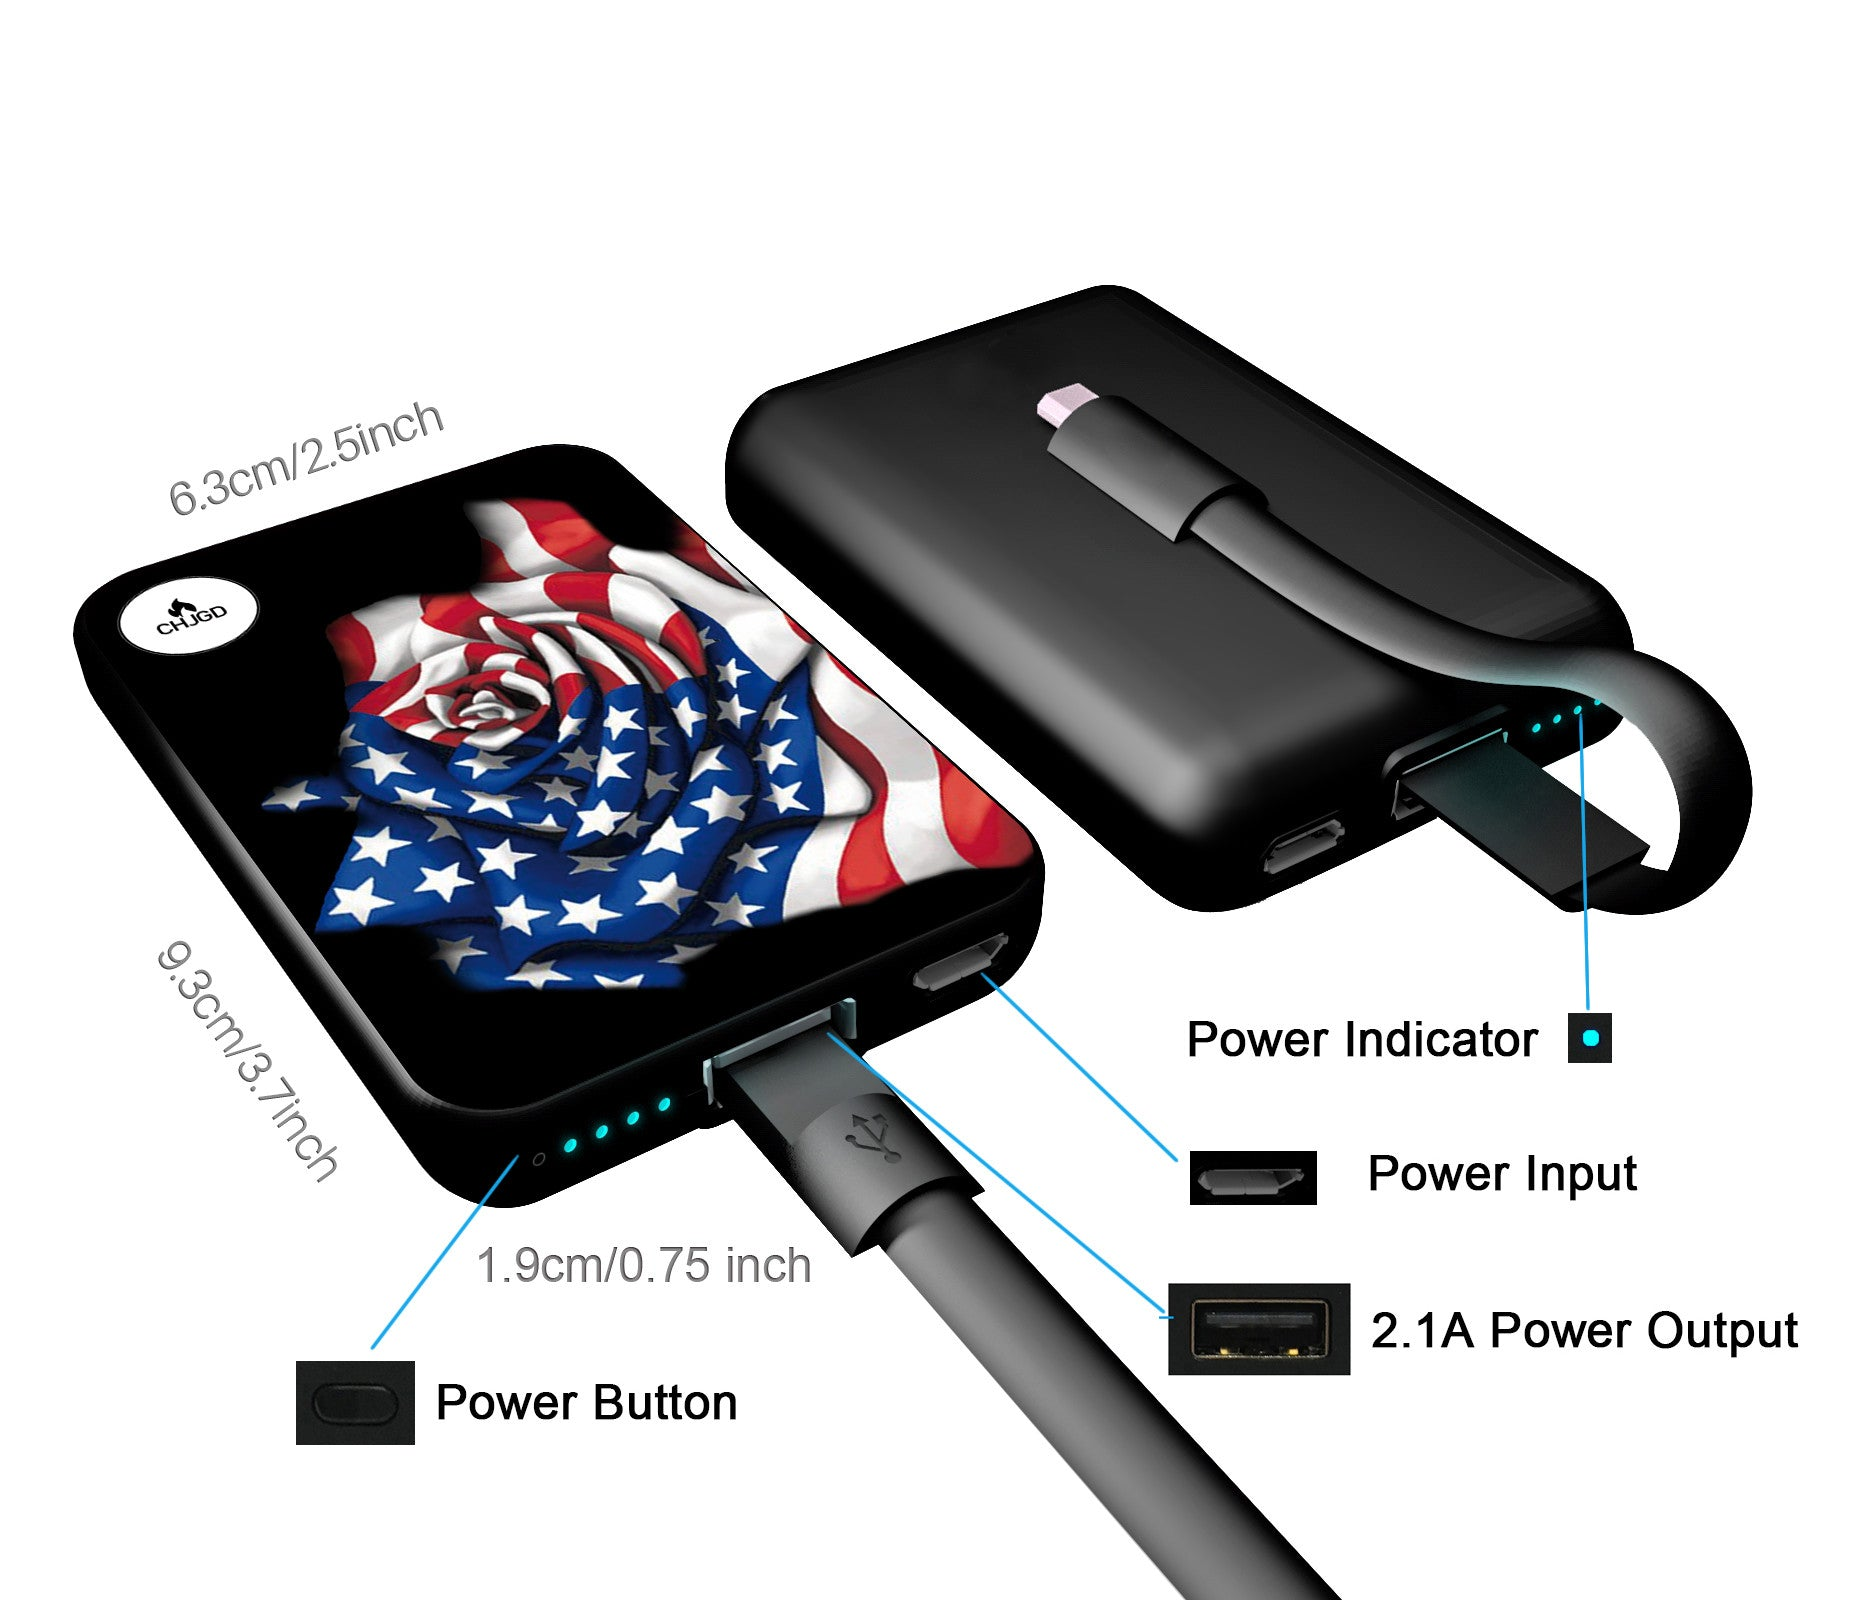 World's Smallest 10,000 mAh Power Bank - CHJGD Ultracompact (American Rose) - CHARGEDPOWER.COM